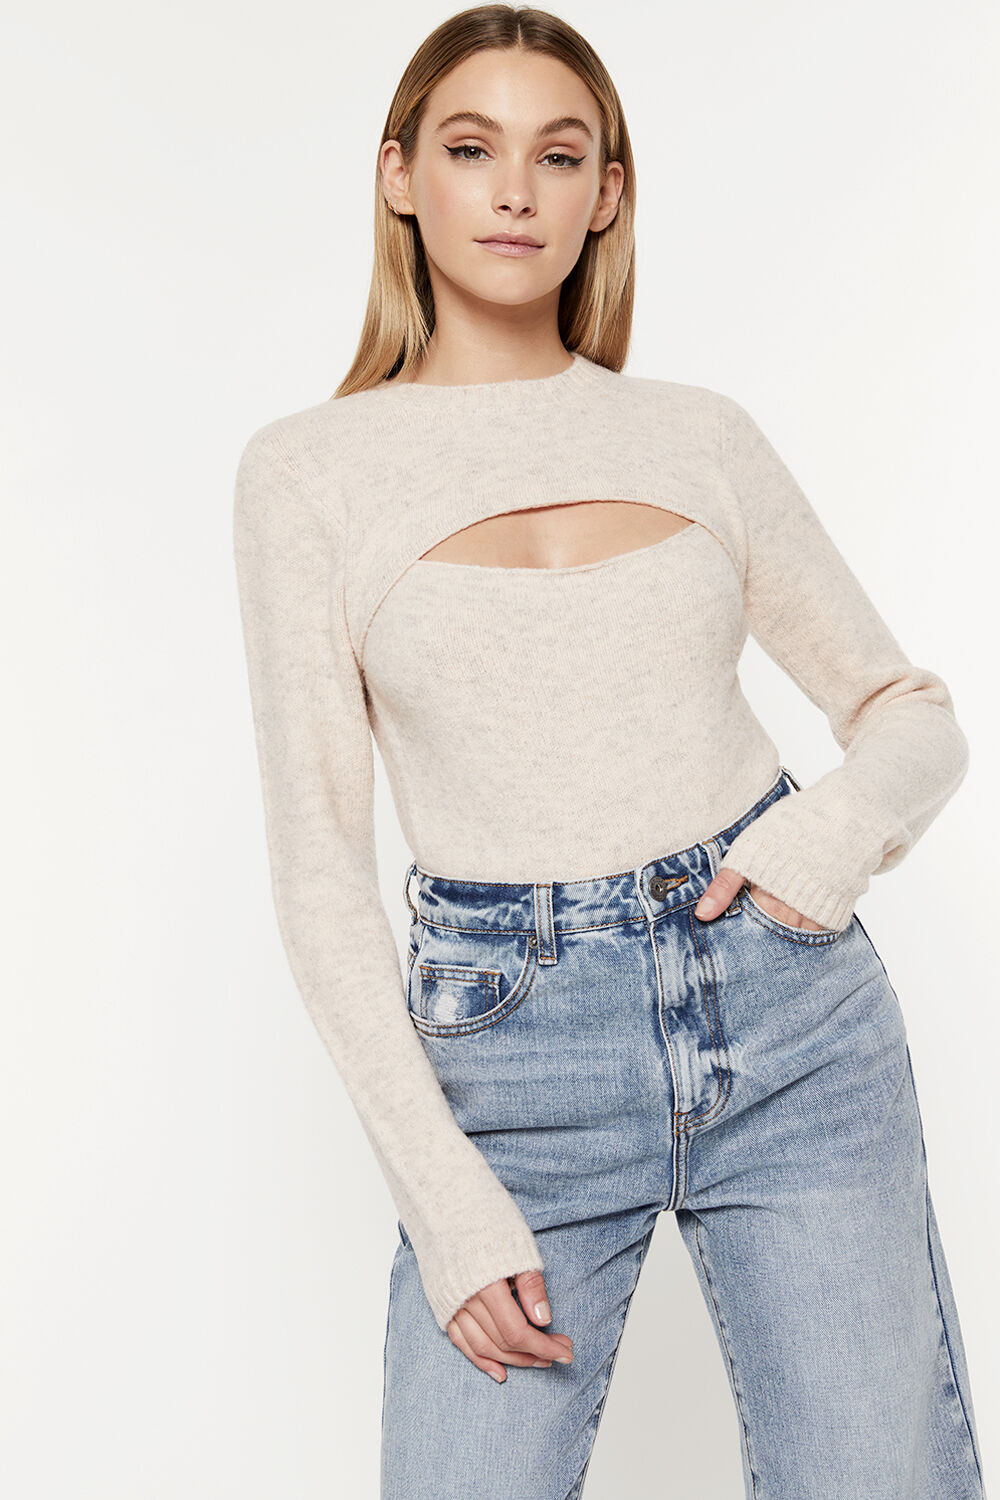 EVIE KNIT TOP in colour CREAM PINK